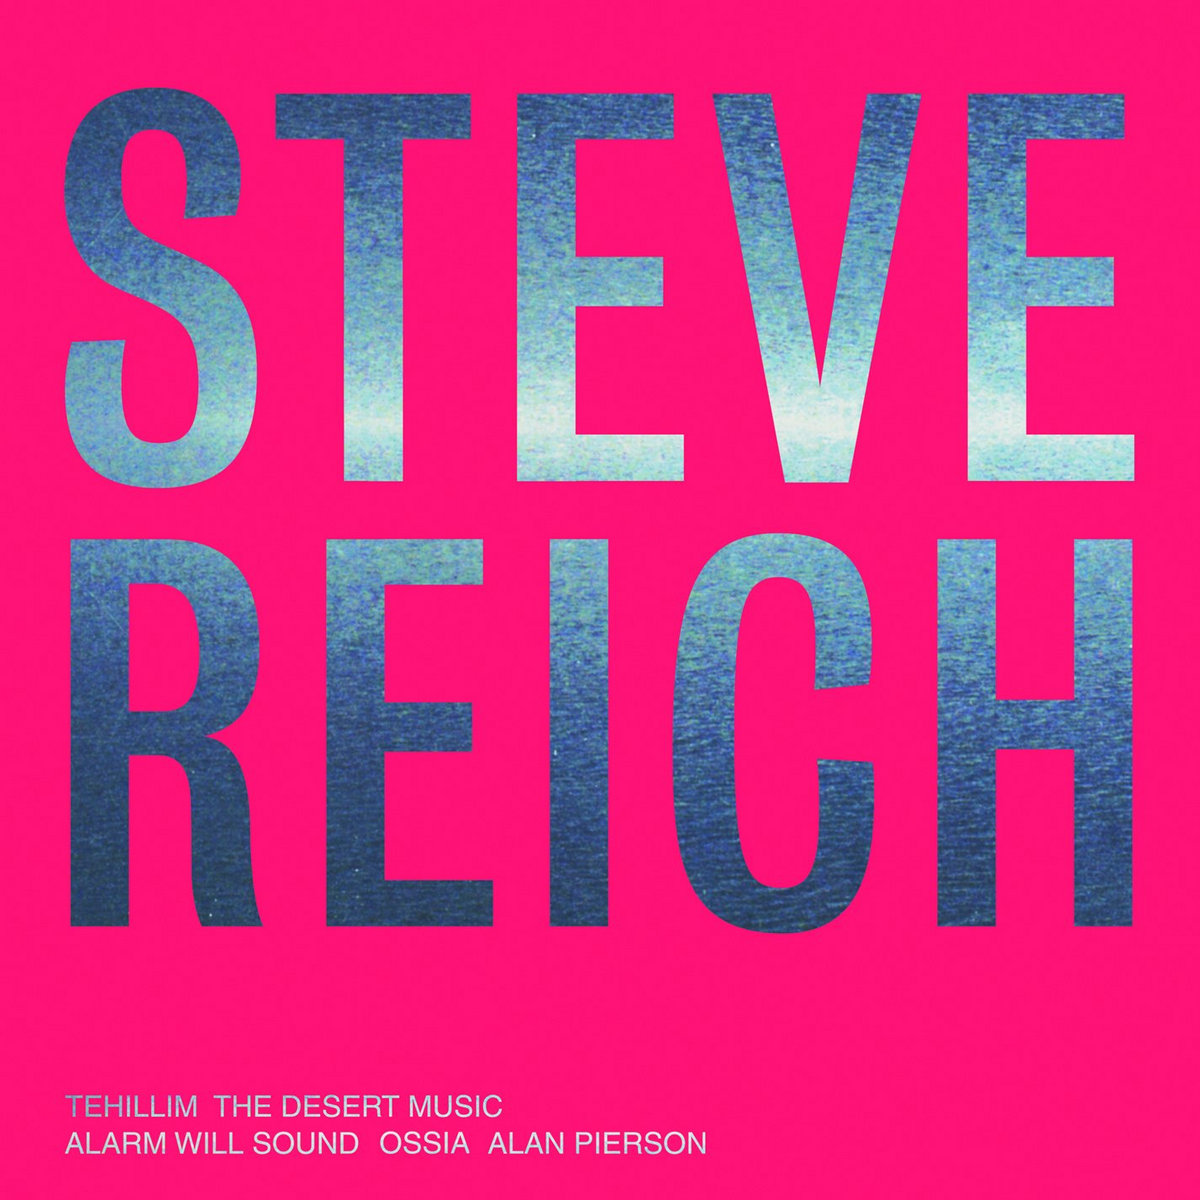 Steve Reich: Tehillim &The Desert Music | Alarm Will Sound